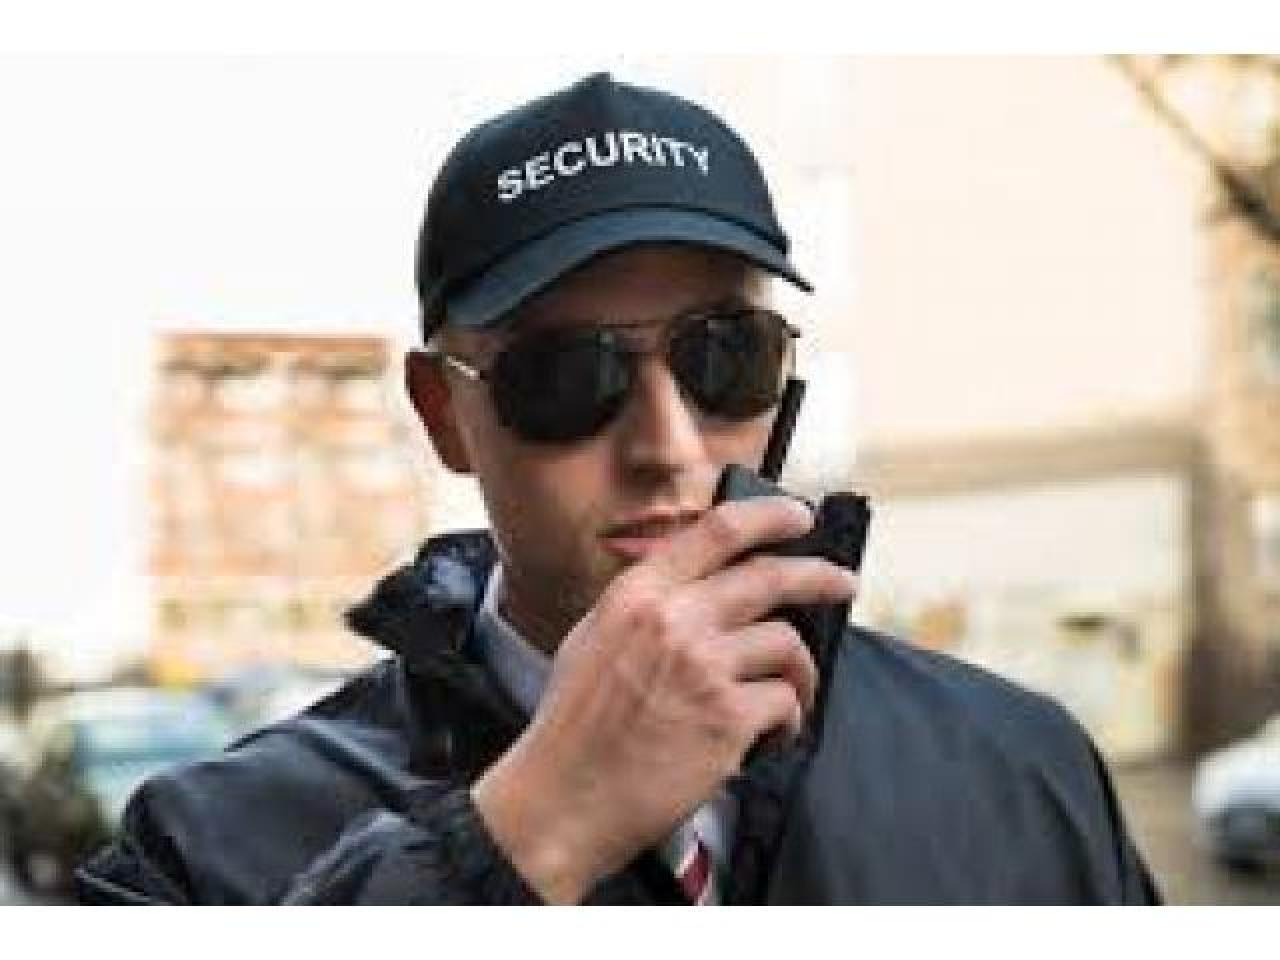 Security officer course & job - 1